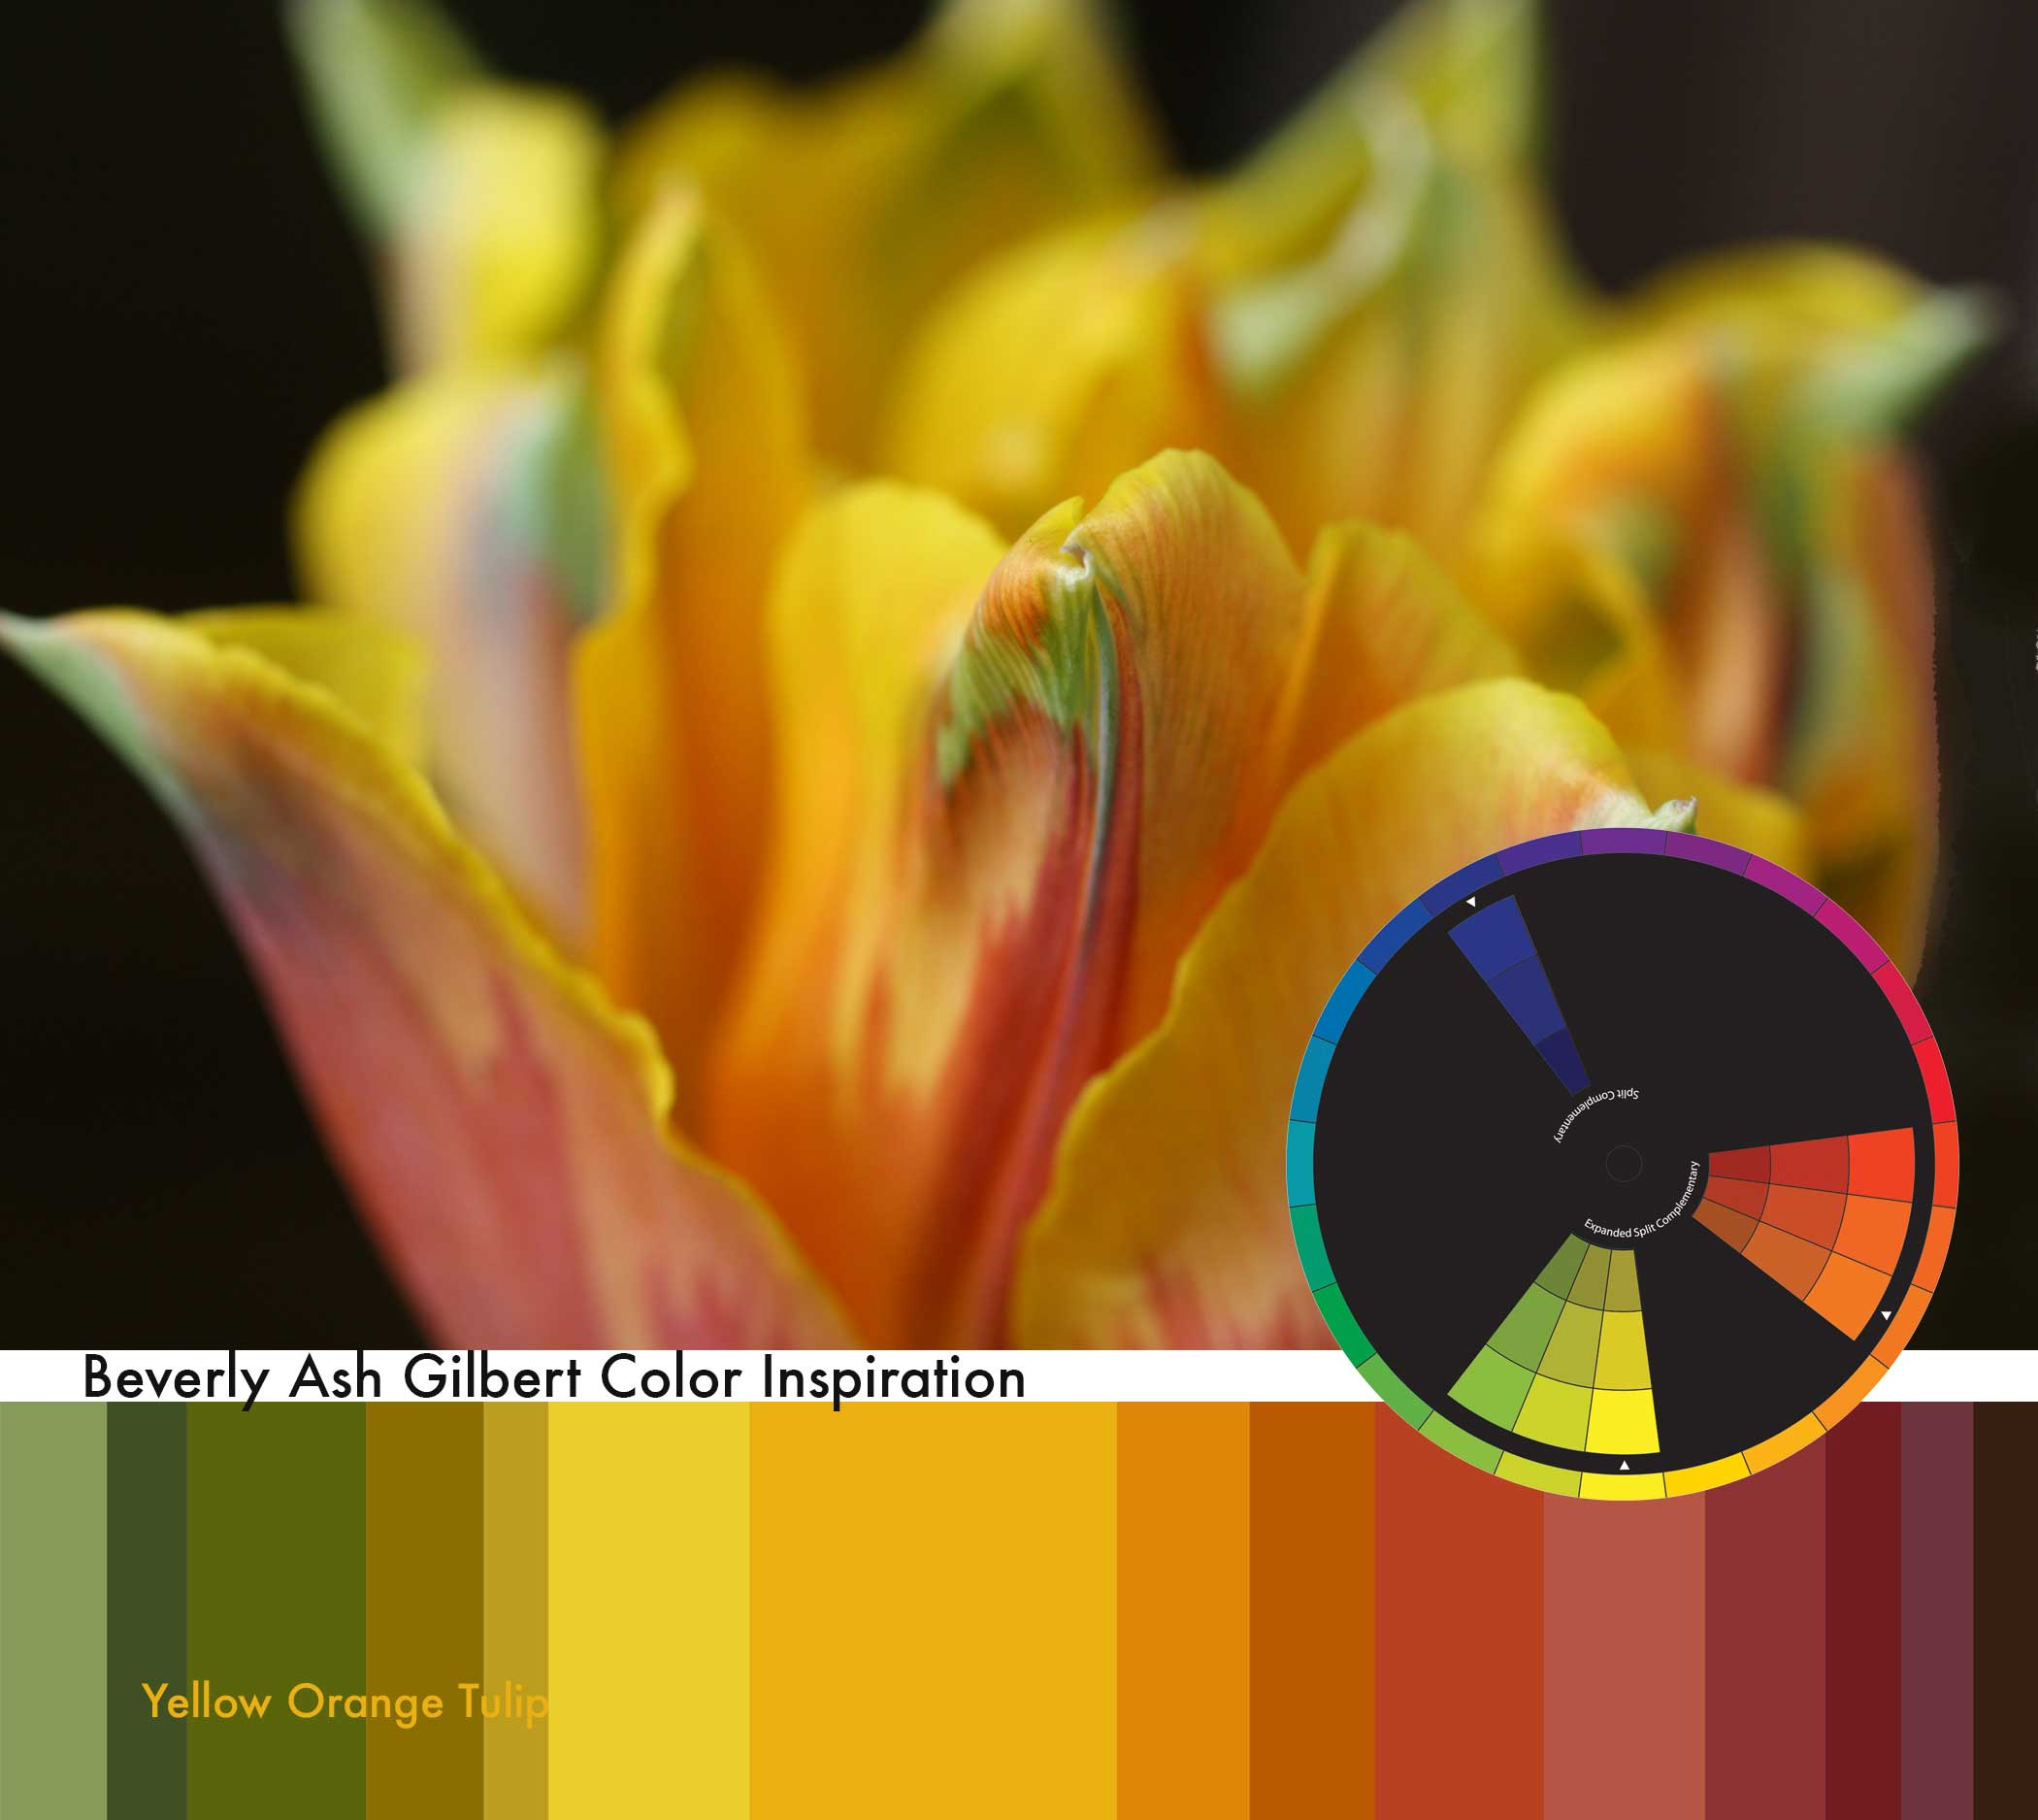 ColorInspiration_YellowOrangeTulip_small.jpg